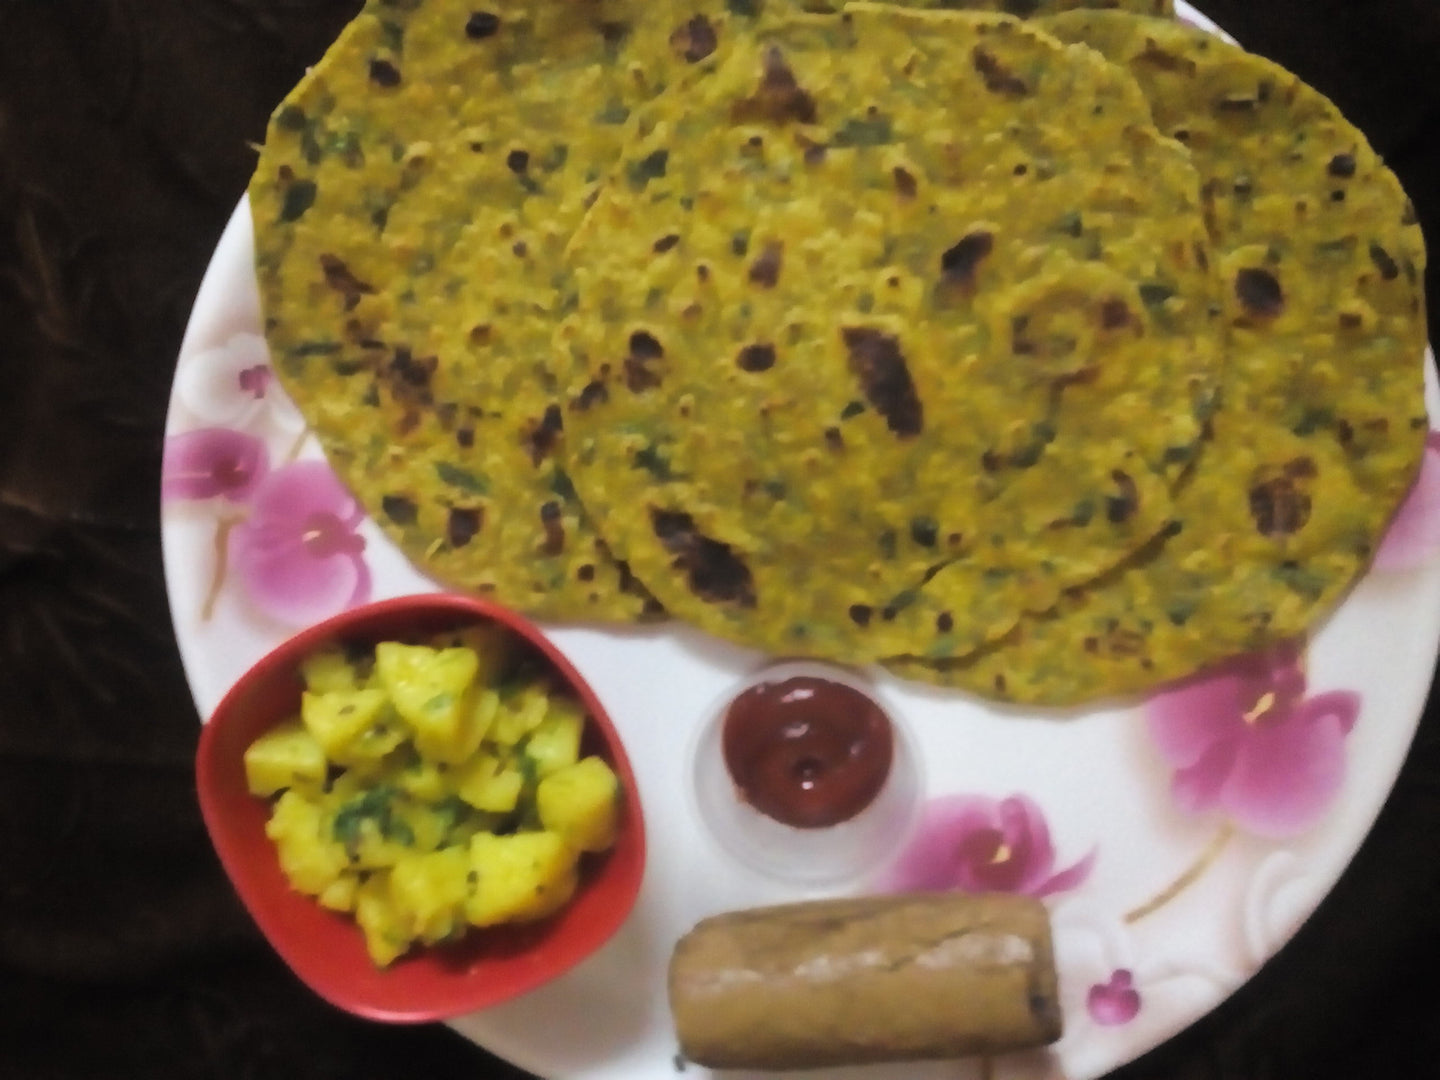 Methi thepla (4), Aloo ki sabji, Kechup & Chocolate Roll -  - Homely - By Asha Parab